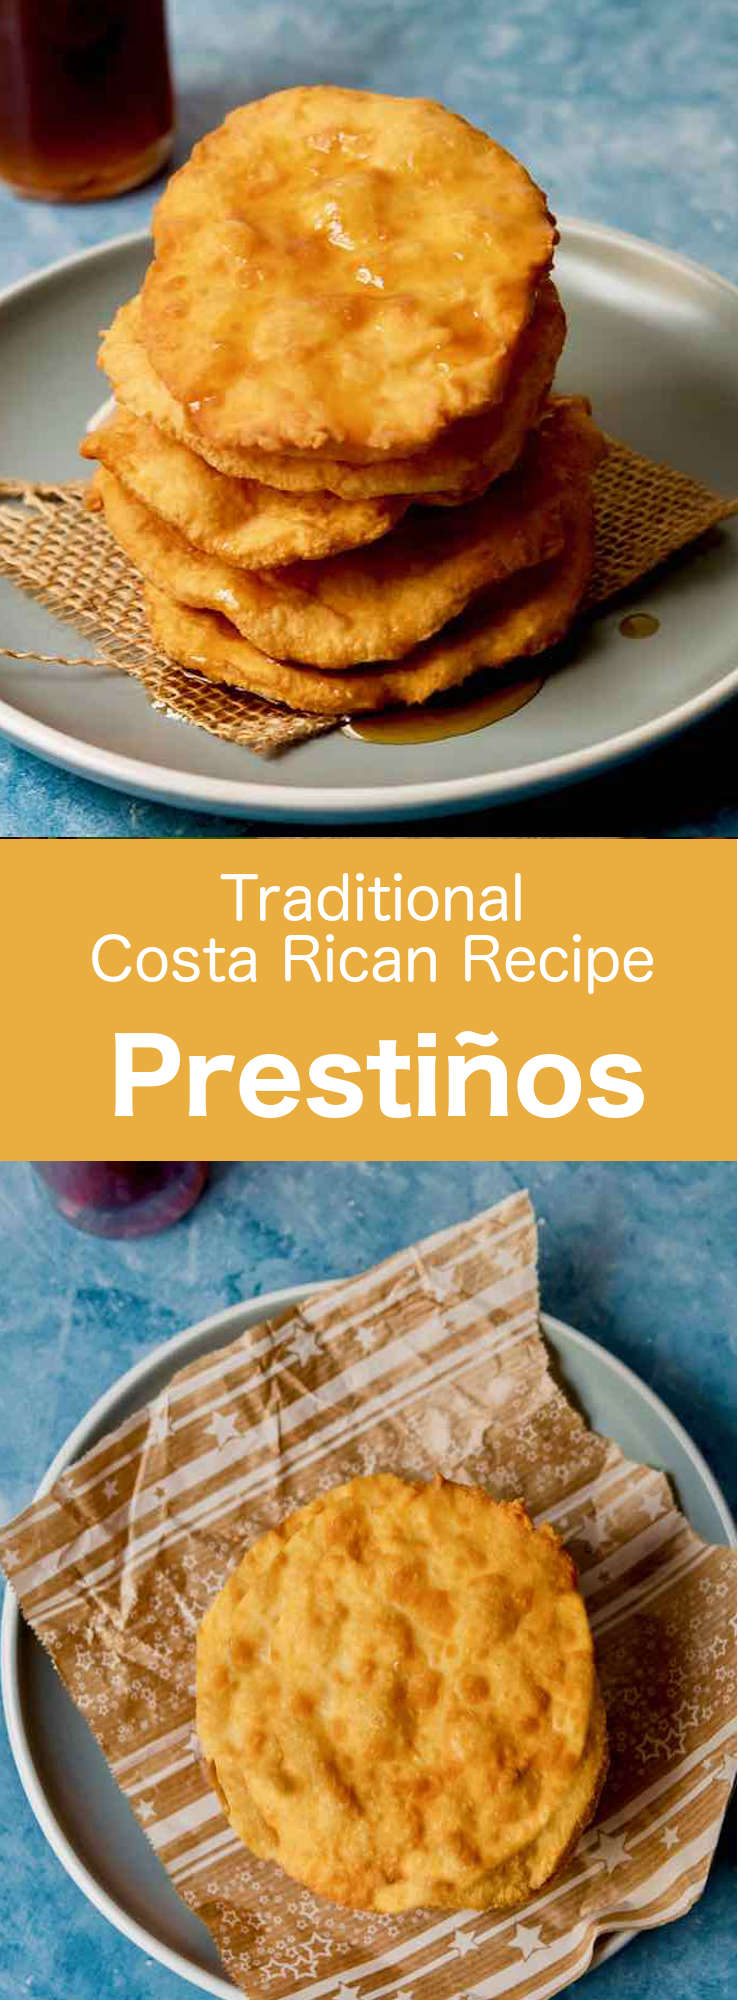 Pestiños are traditional Costa Rican confectioneries, consisting of a thin, fried dough and tapa de dulce (panela) syrup. #CostaRica #CostaRicanCuisine #CostaRicanFood #CostaRicanRecipe #WorldCuisine #196flavors